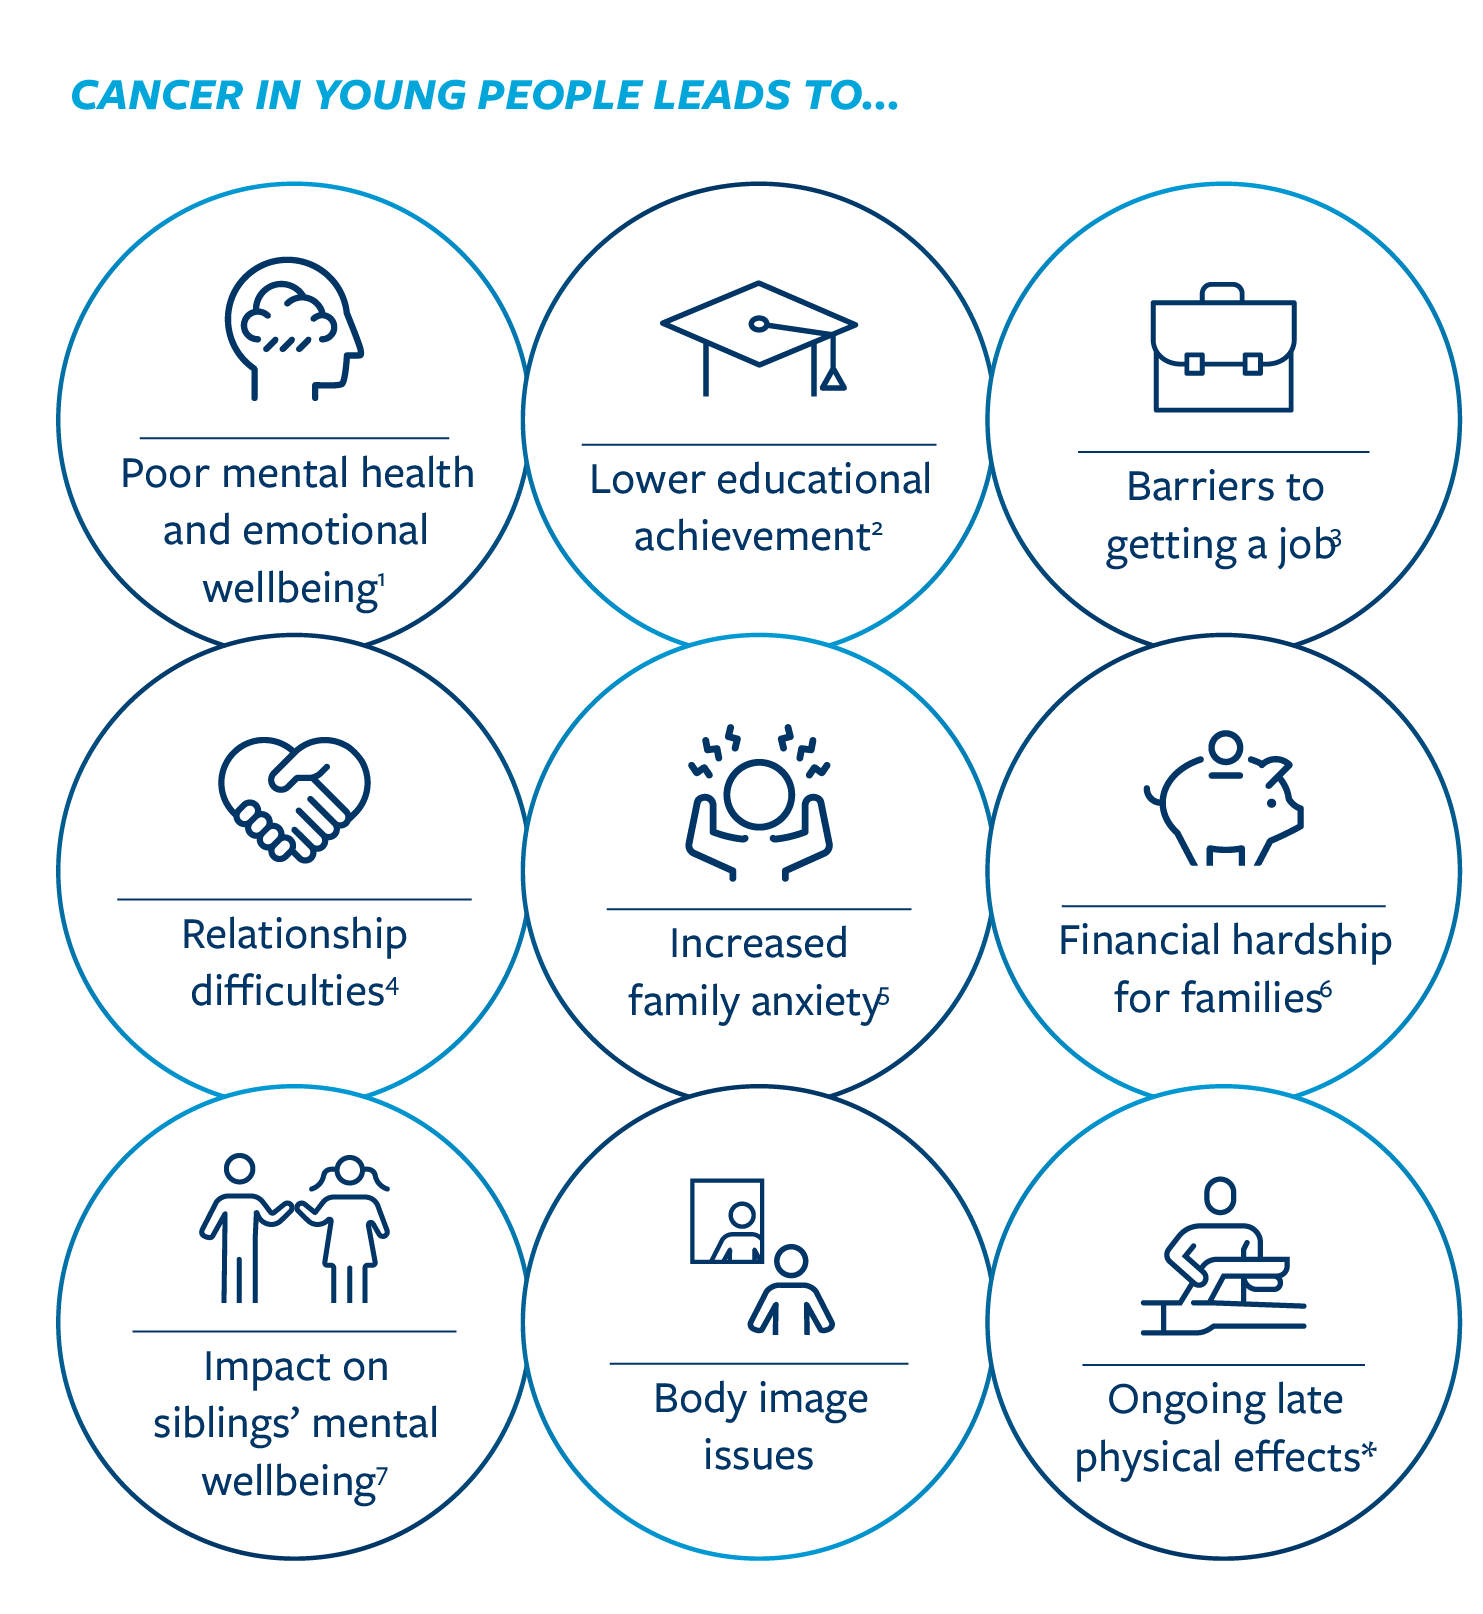 Graphic detailing the different effects cancer can have on a young person